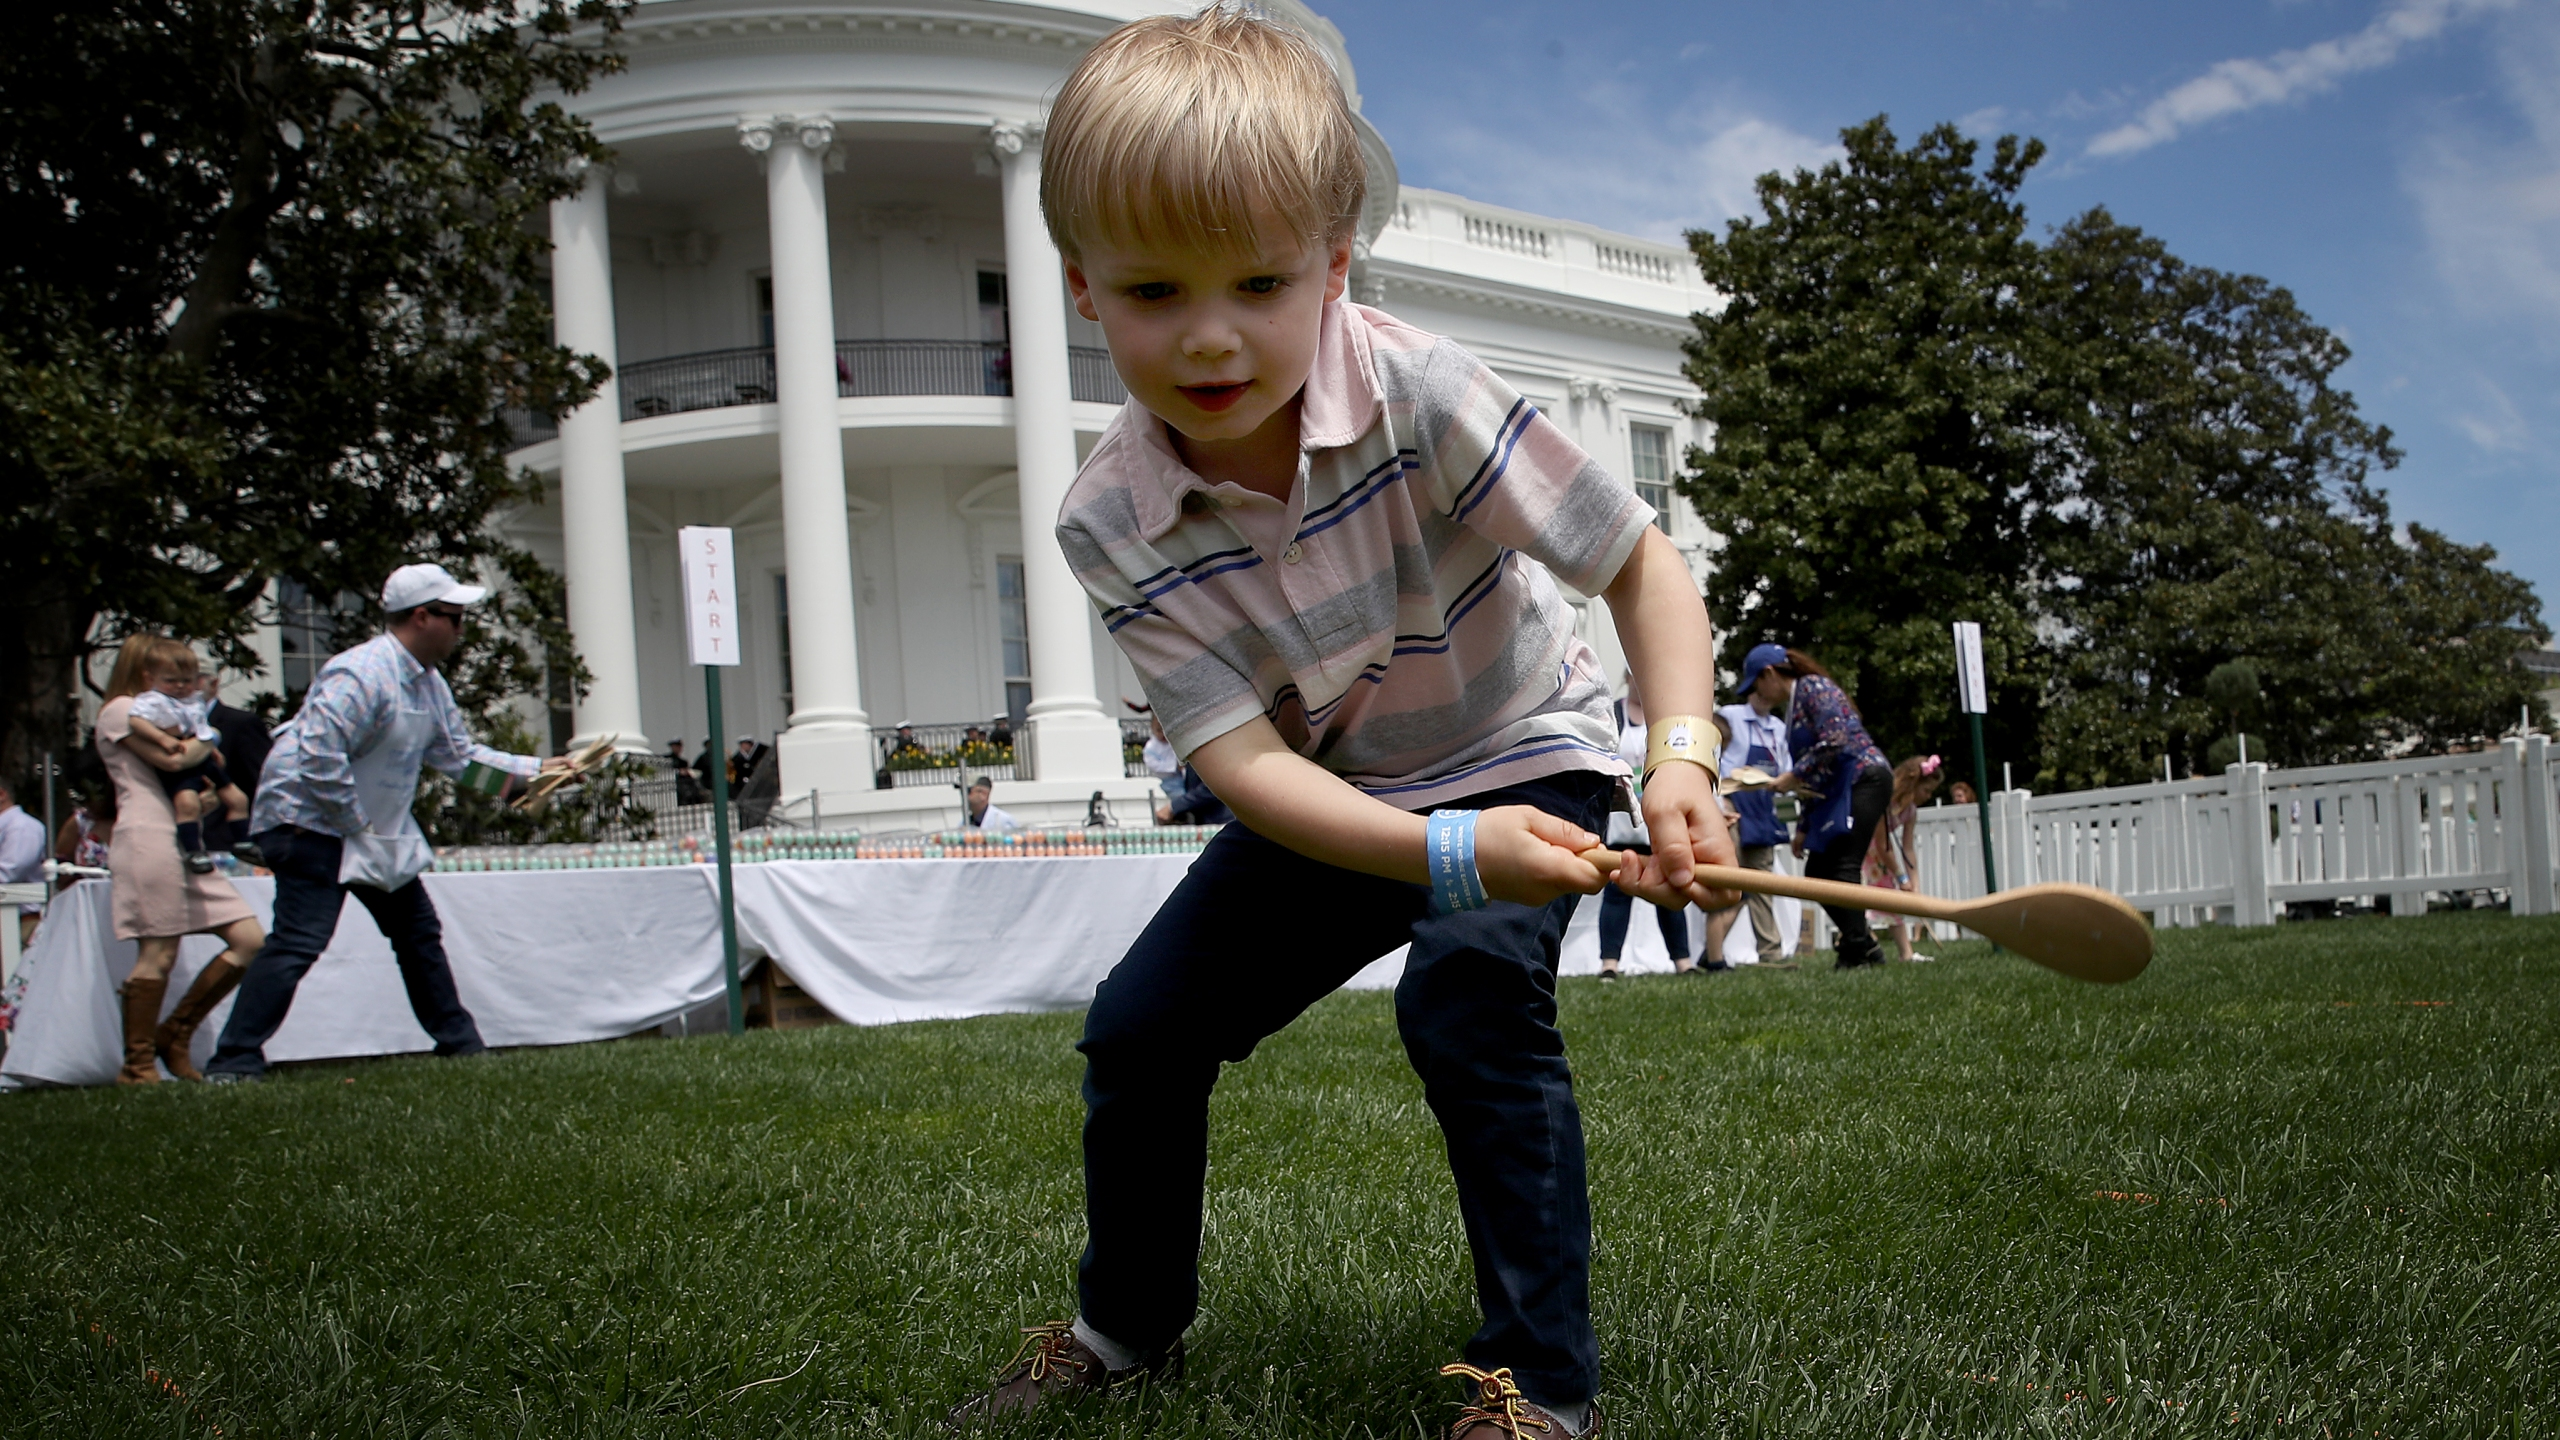 Children participate in races during the 141st Easter Egg Roll at the White House April 22, 2019 in Washington, DC. (Photo by Win McNamee/Getty Images)